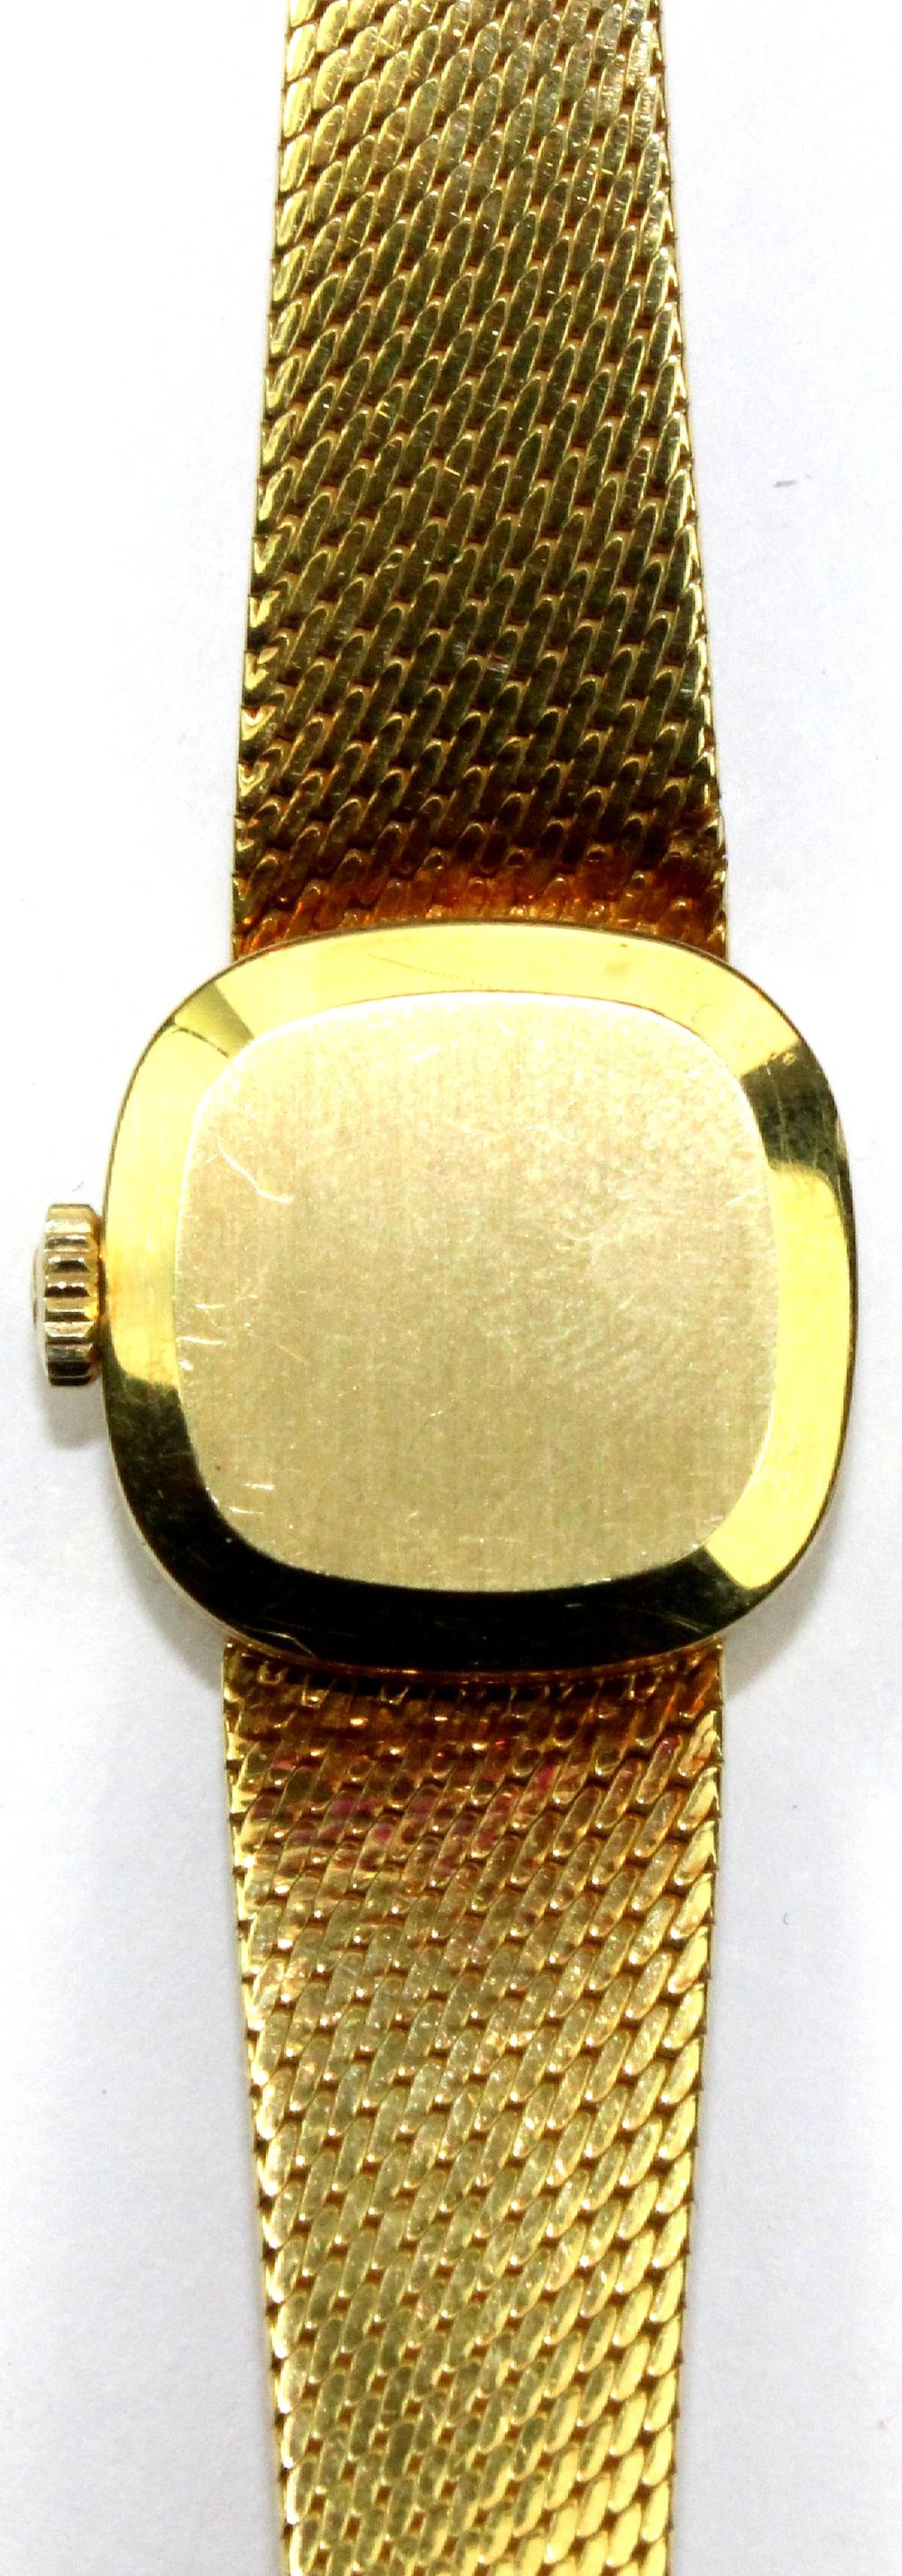 Woman's 'Tissot' 1970s 'Stylist' Watch in 18ct Yellow Gold with attached custom band